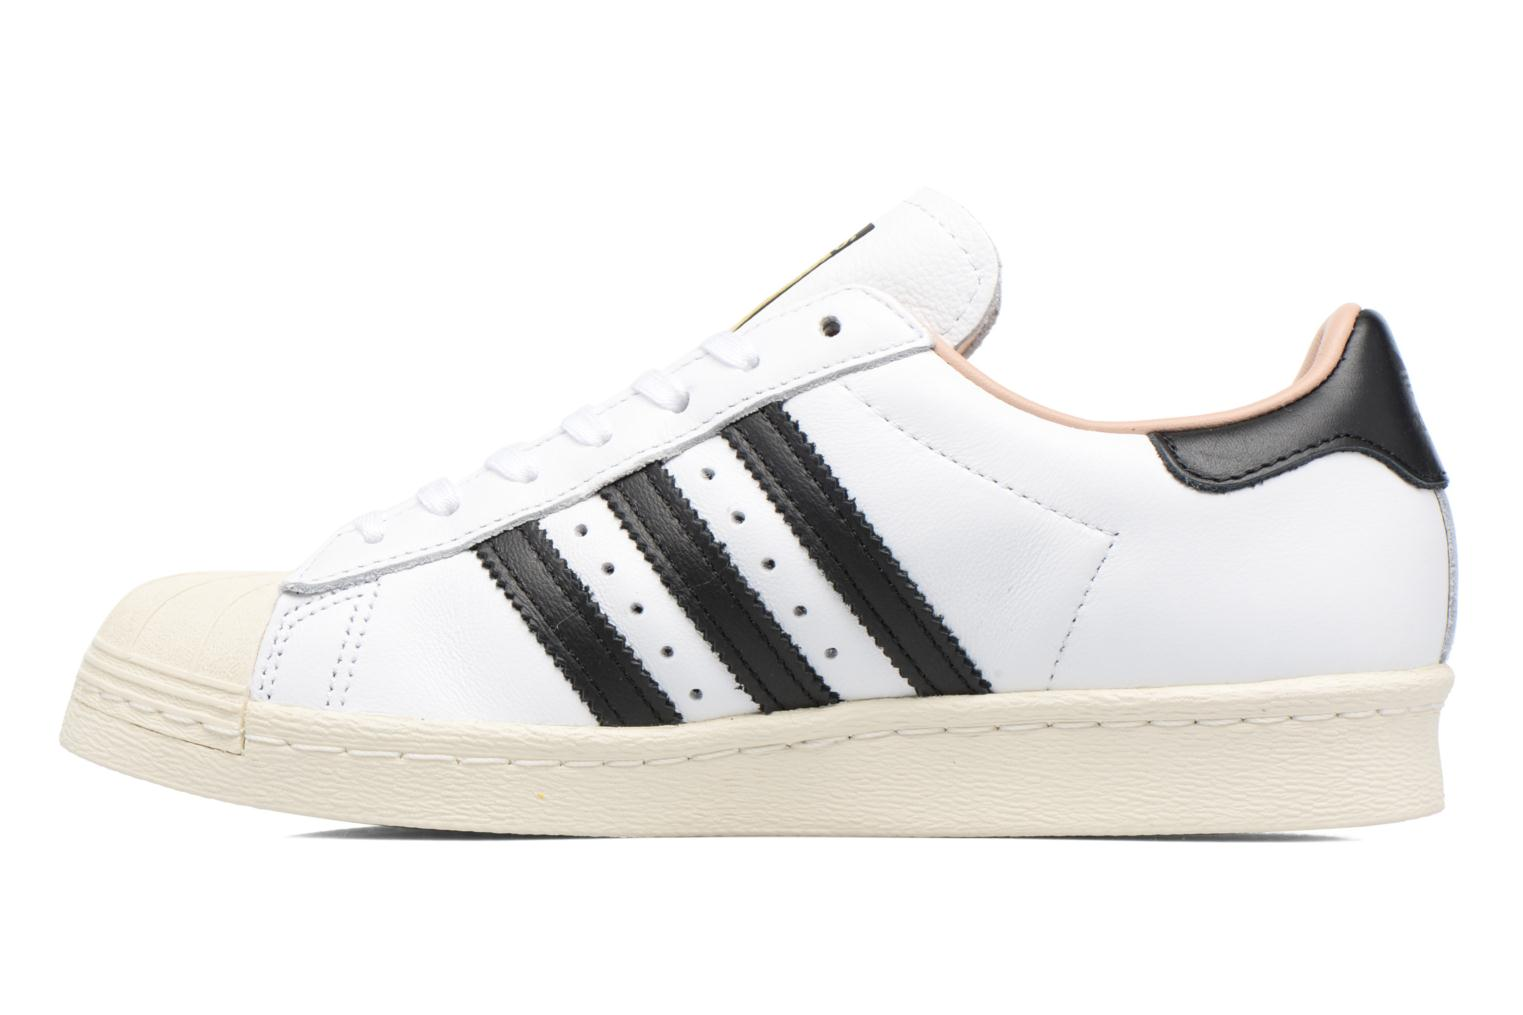 Superstar 80S W Ftwbla/Noiess/Blacas